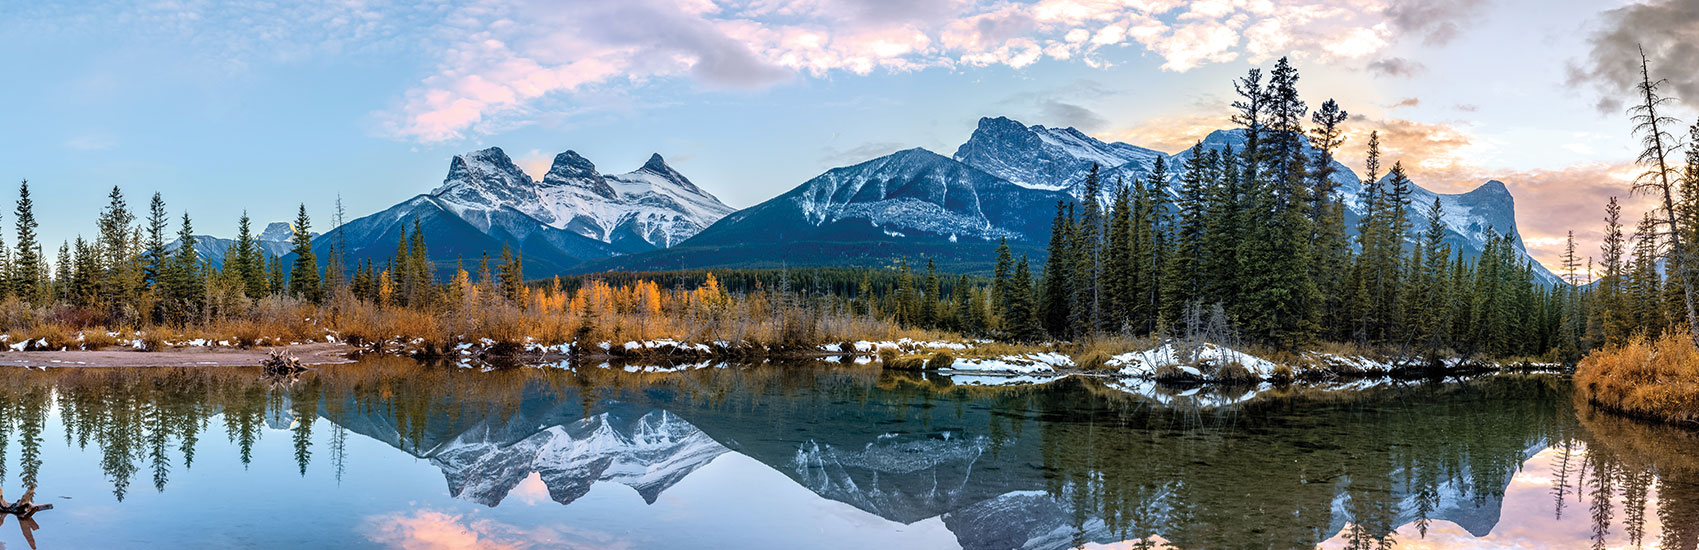 Canadian Rockies Escape with Globus 2